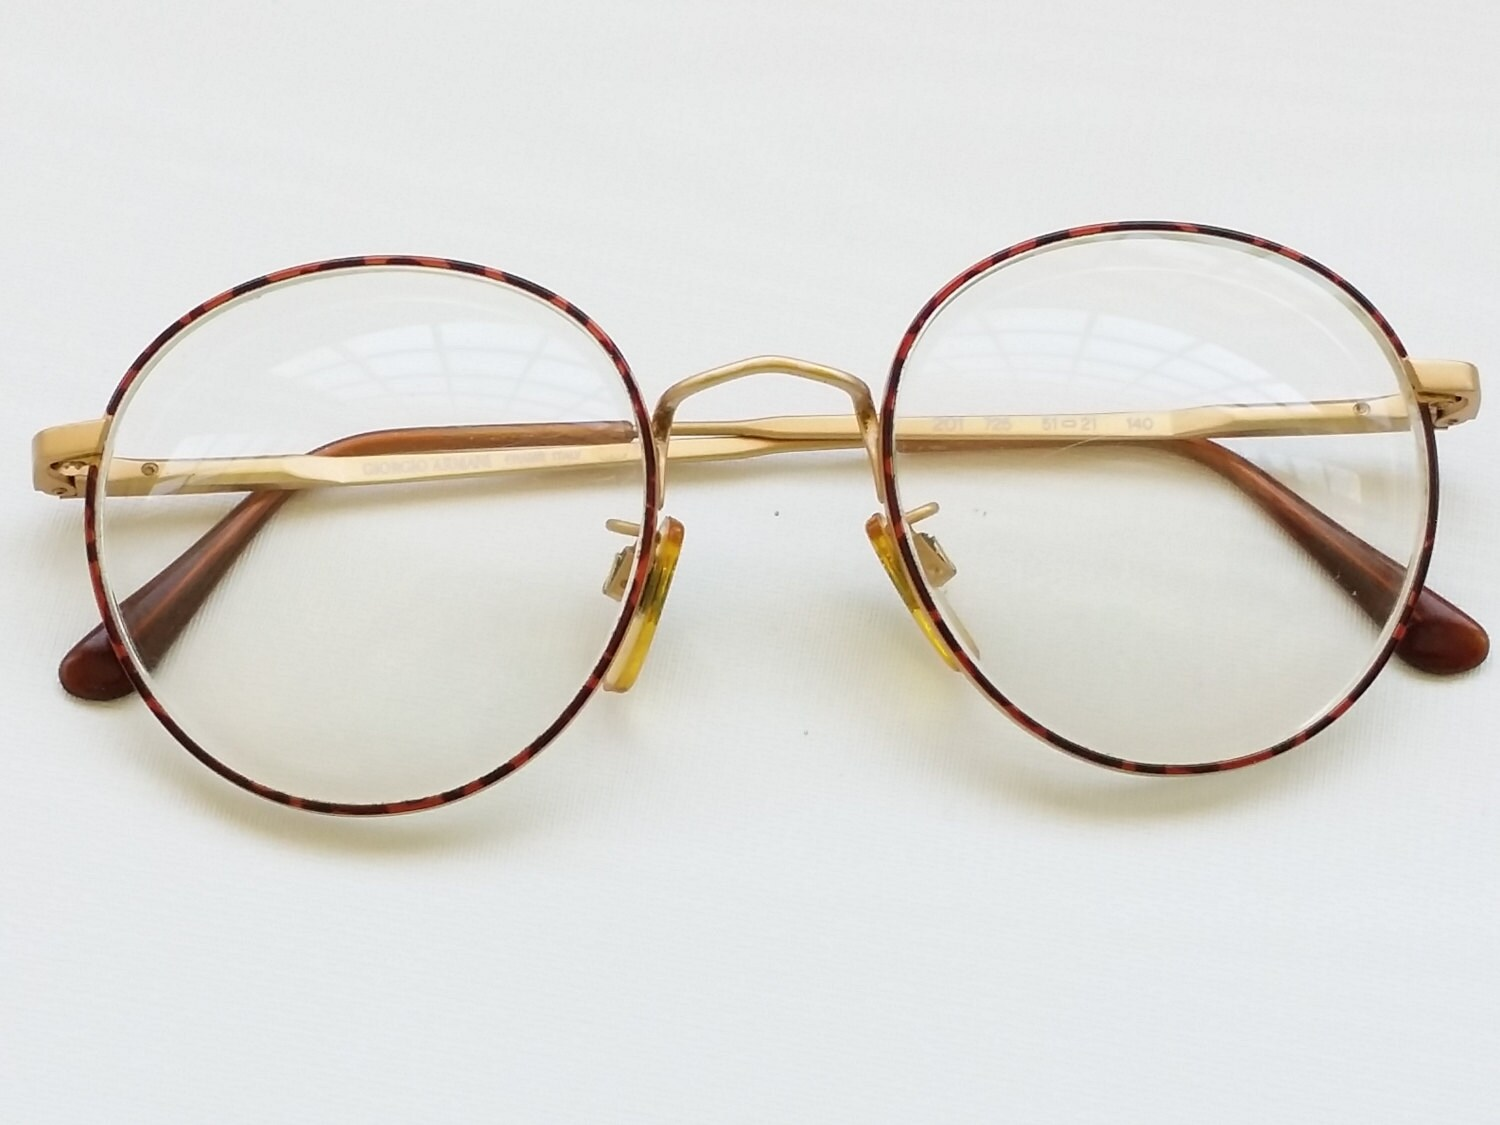 Giorgio Armani Frames For Glasses : 80s GIORGIO ARMANI Over Sized Round Eyeglass Frames